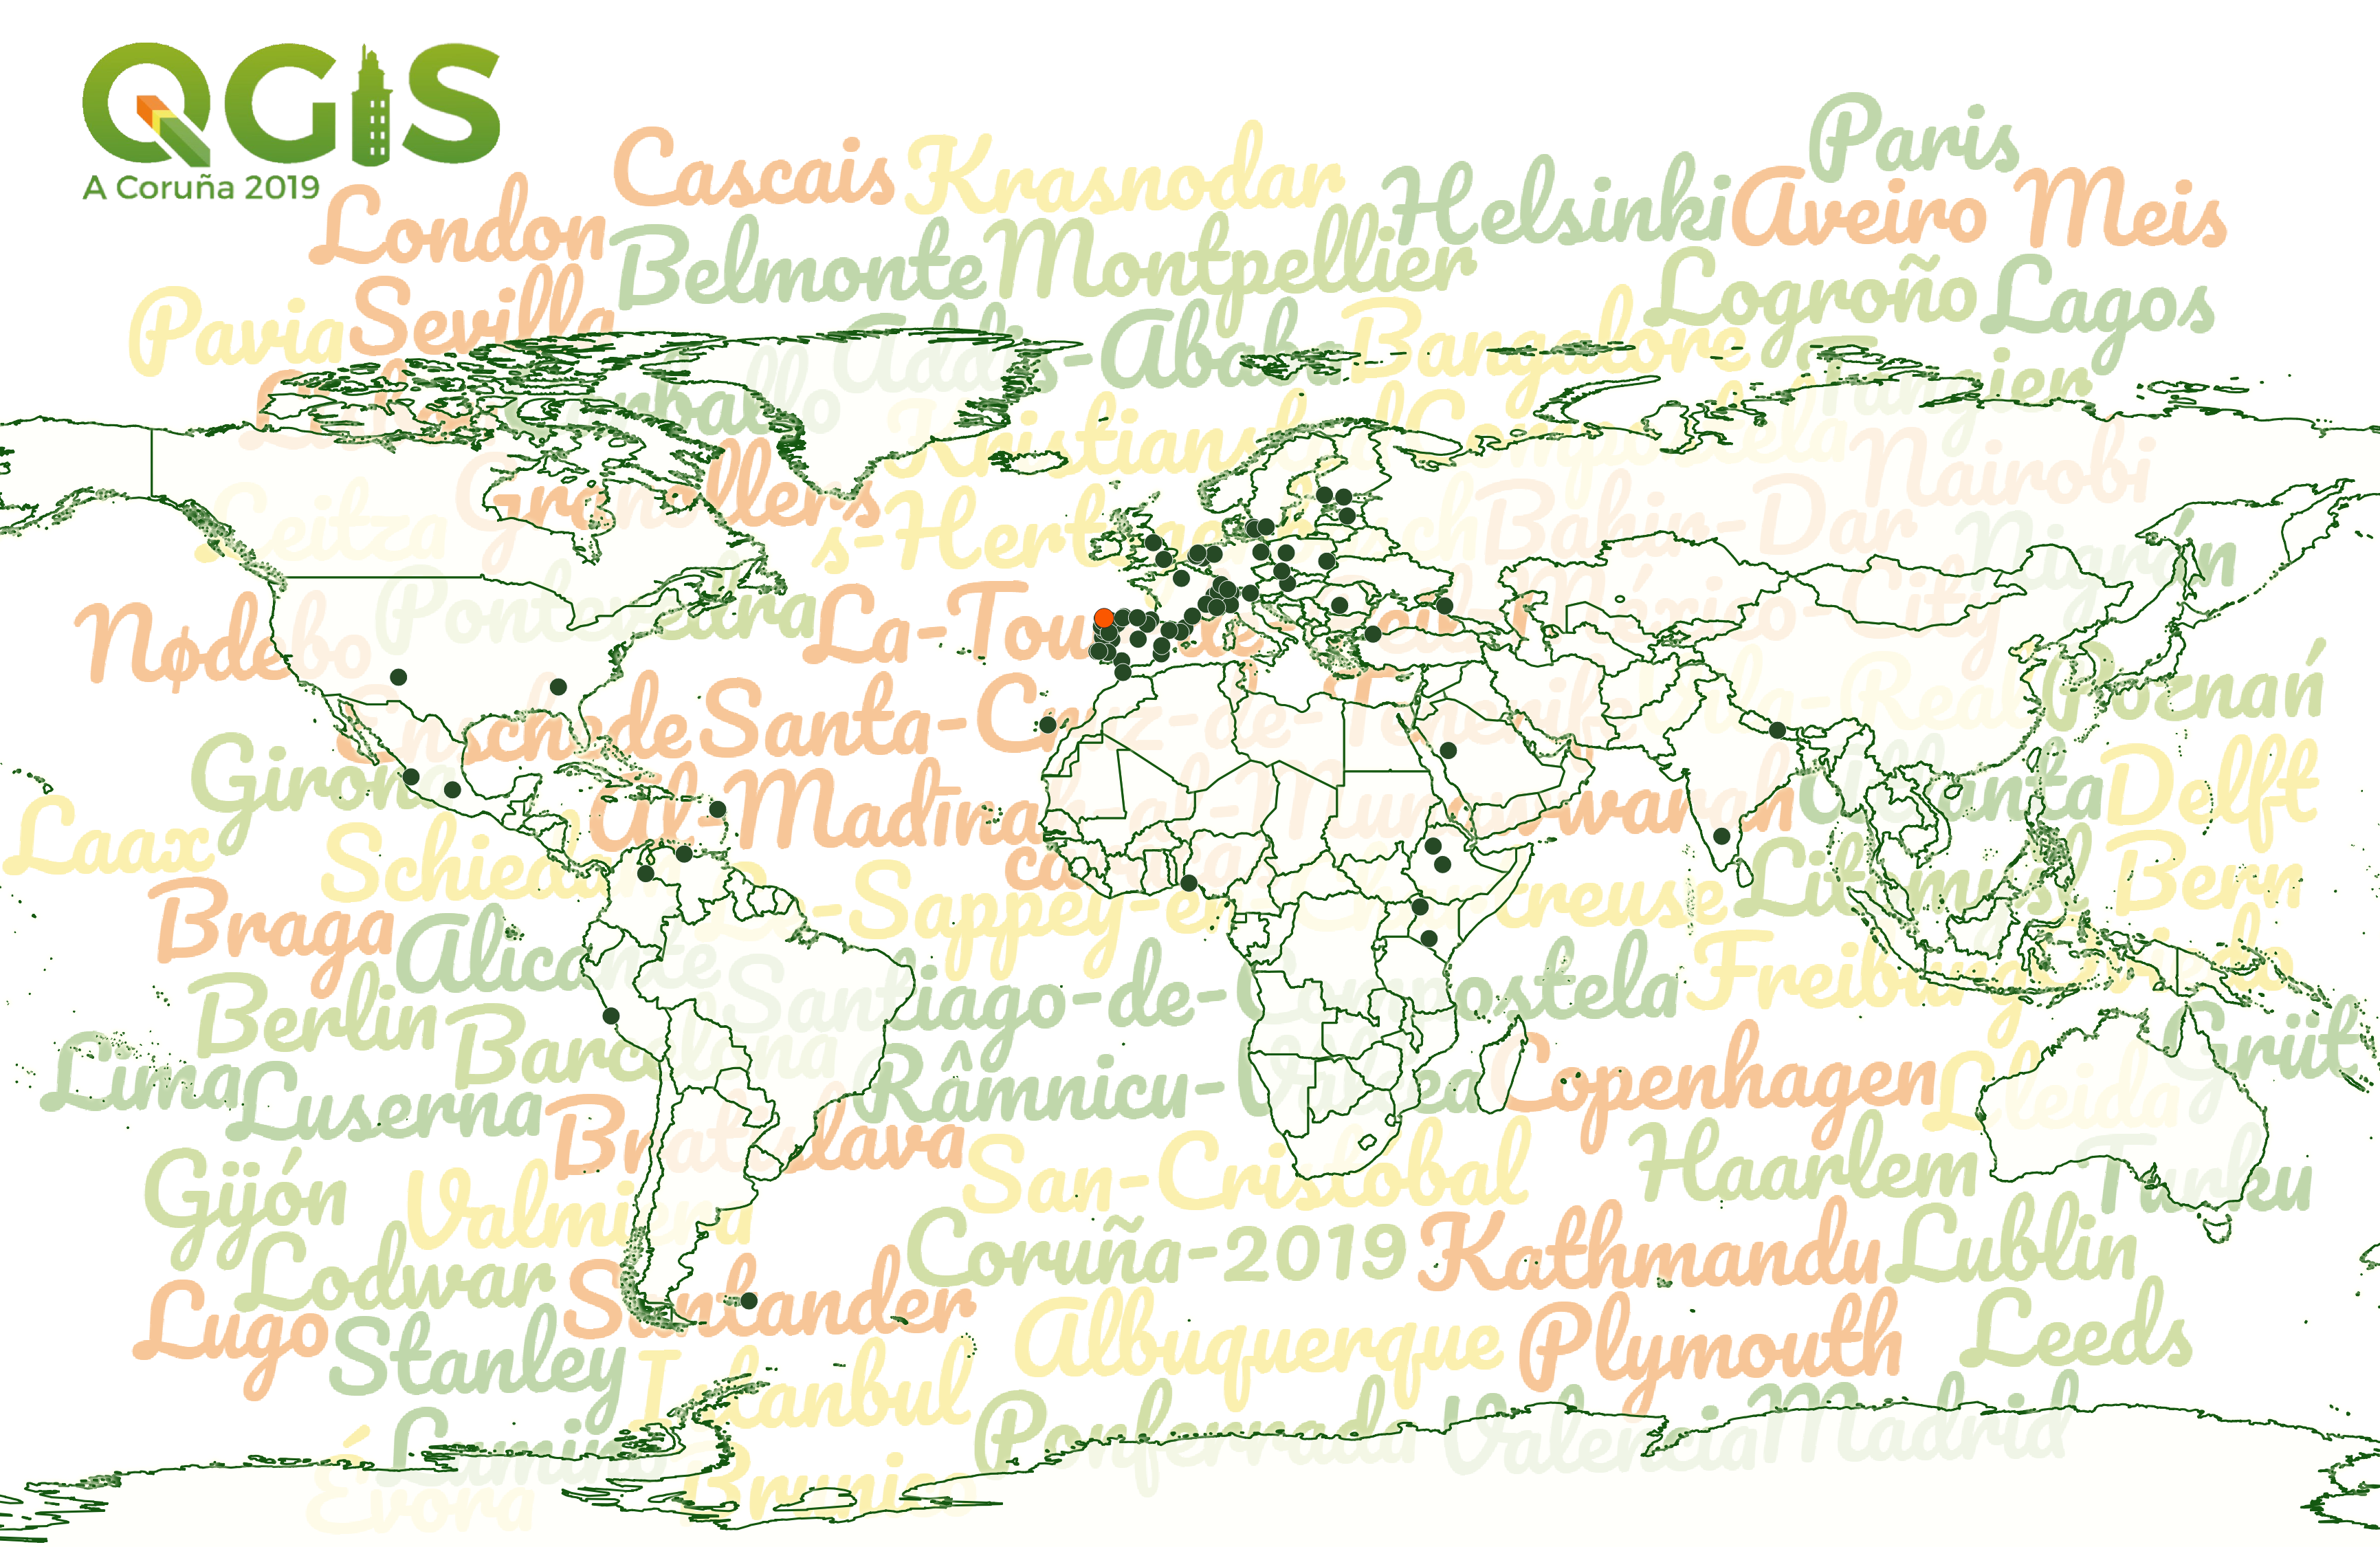 International QGIS User Conference – A Coruña 2019 (Spain)